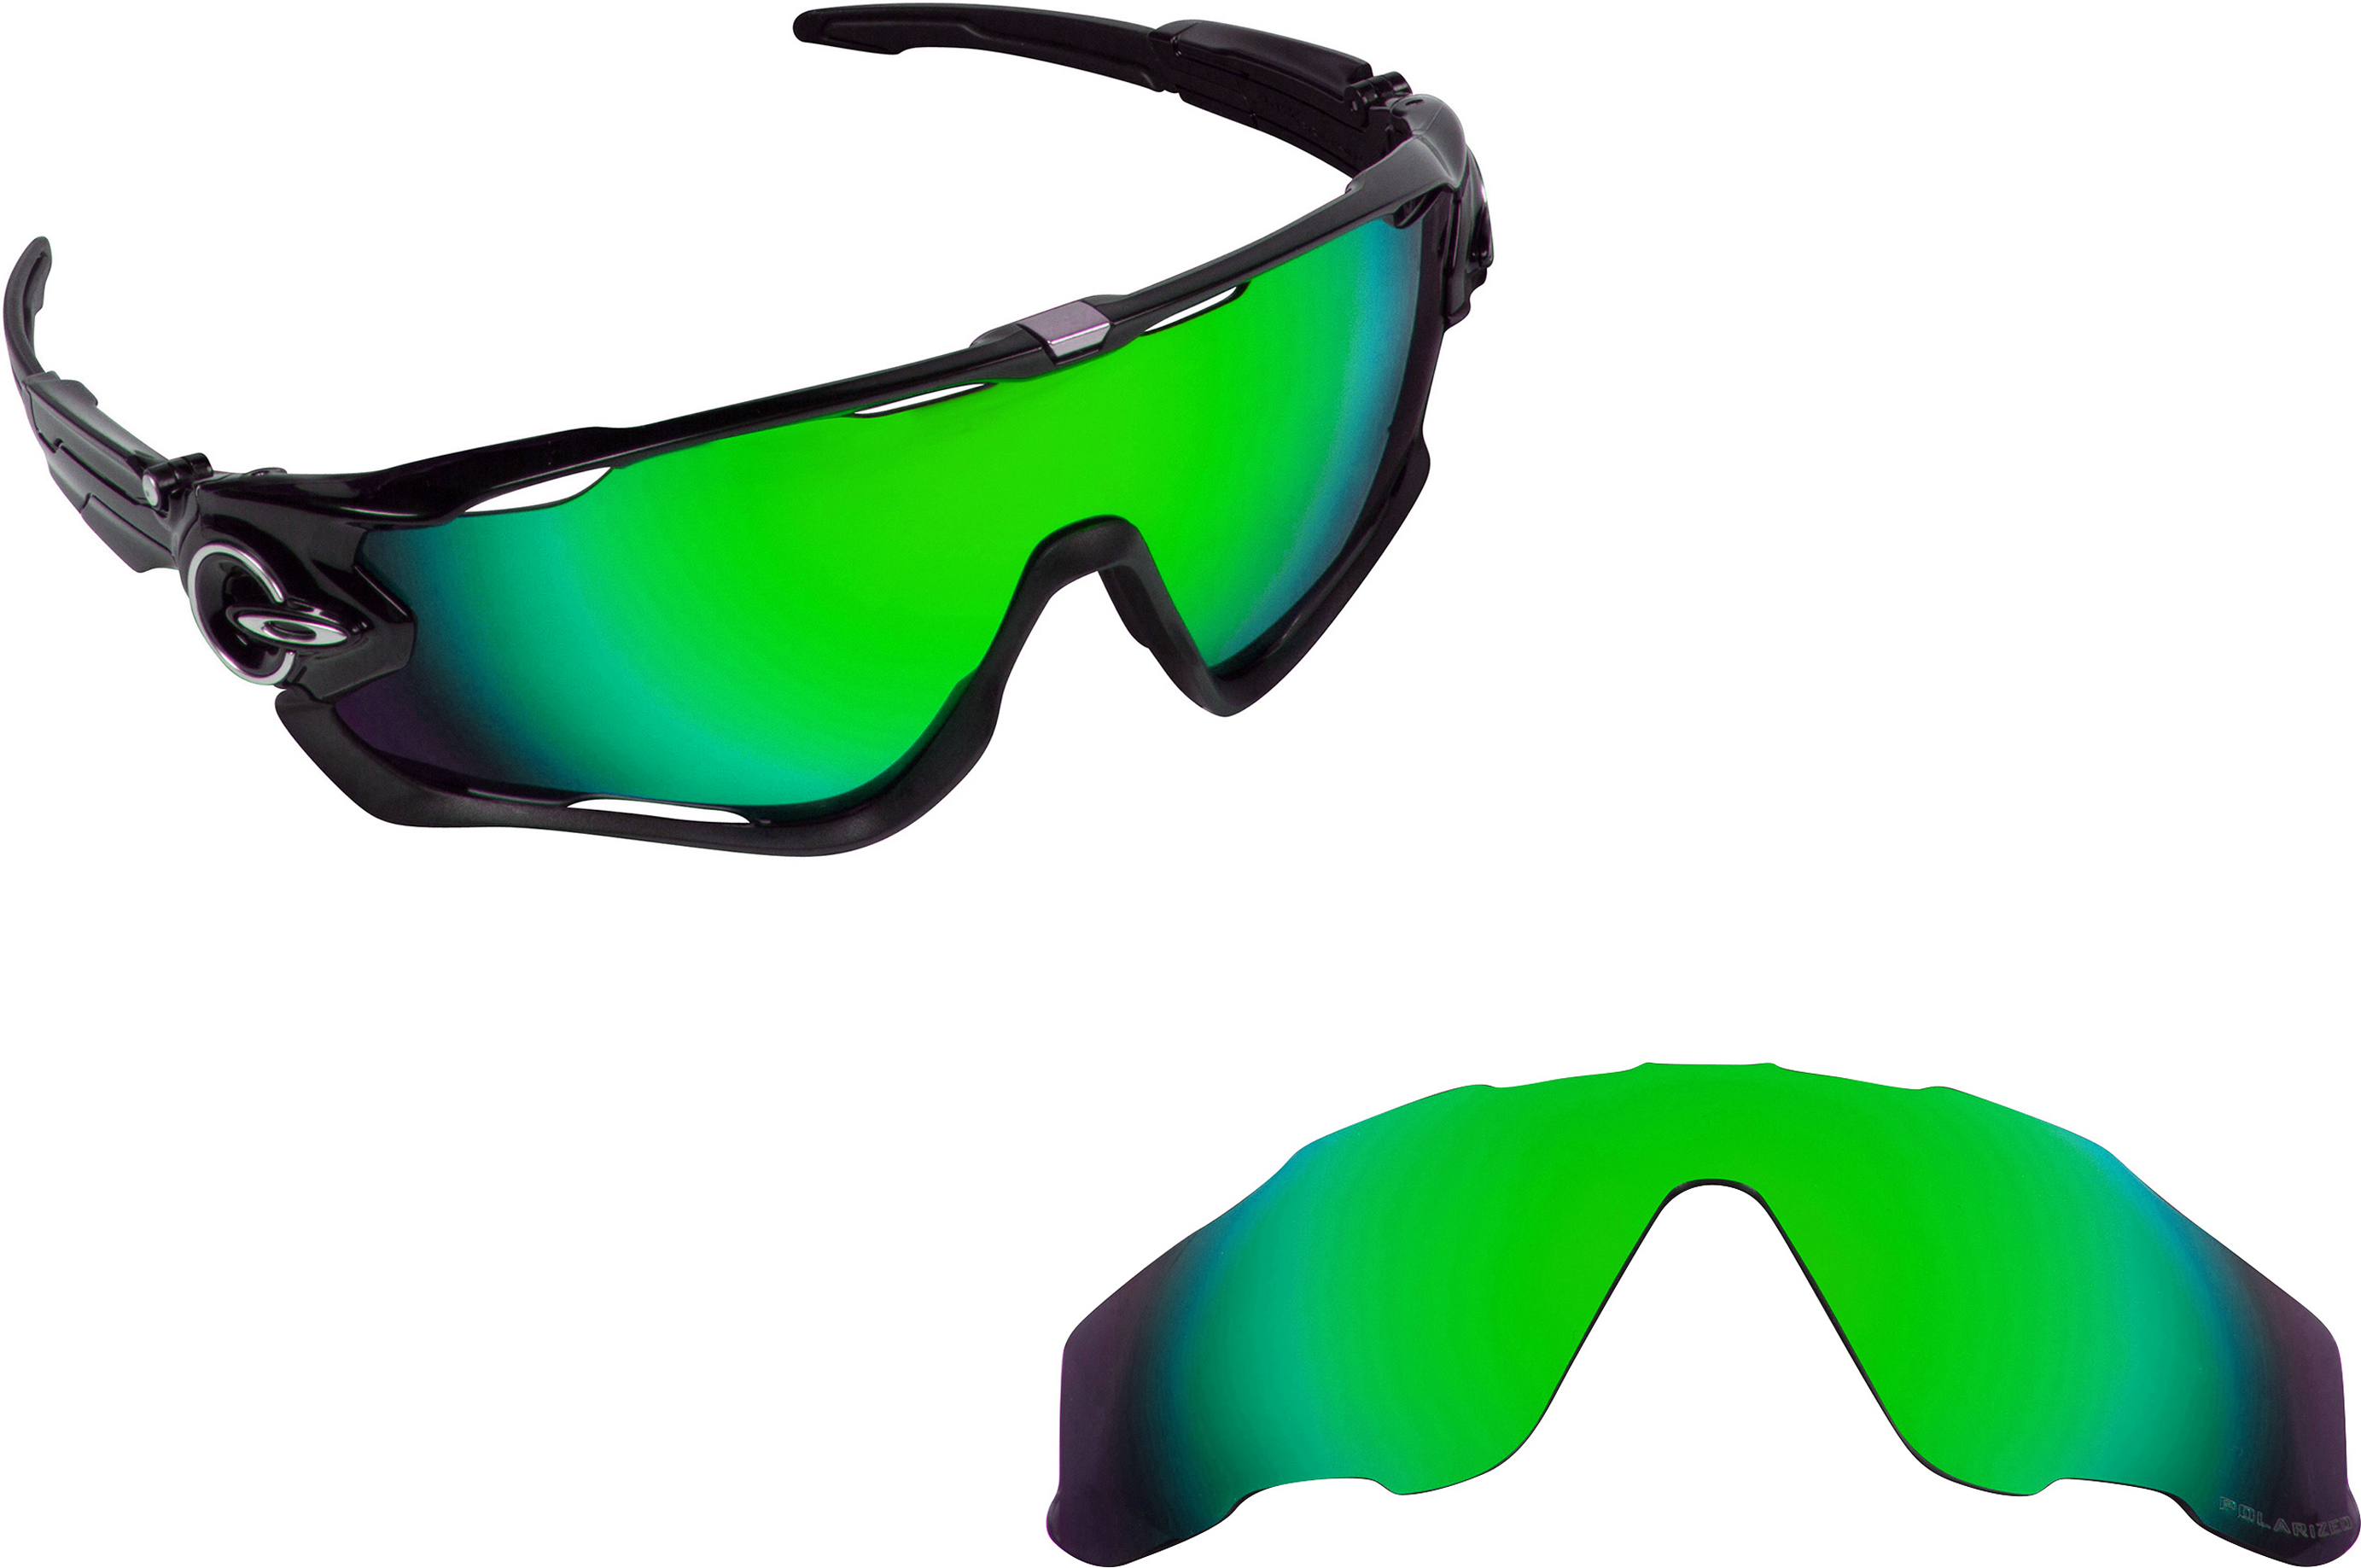 945078f4c8b ... new seek polarized replacement lenses oakley jawbreaker asian fit green  mirror. picture 1 of 7